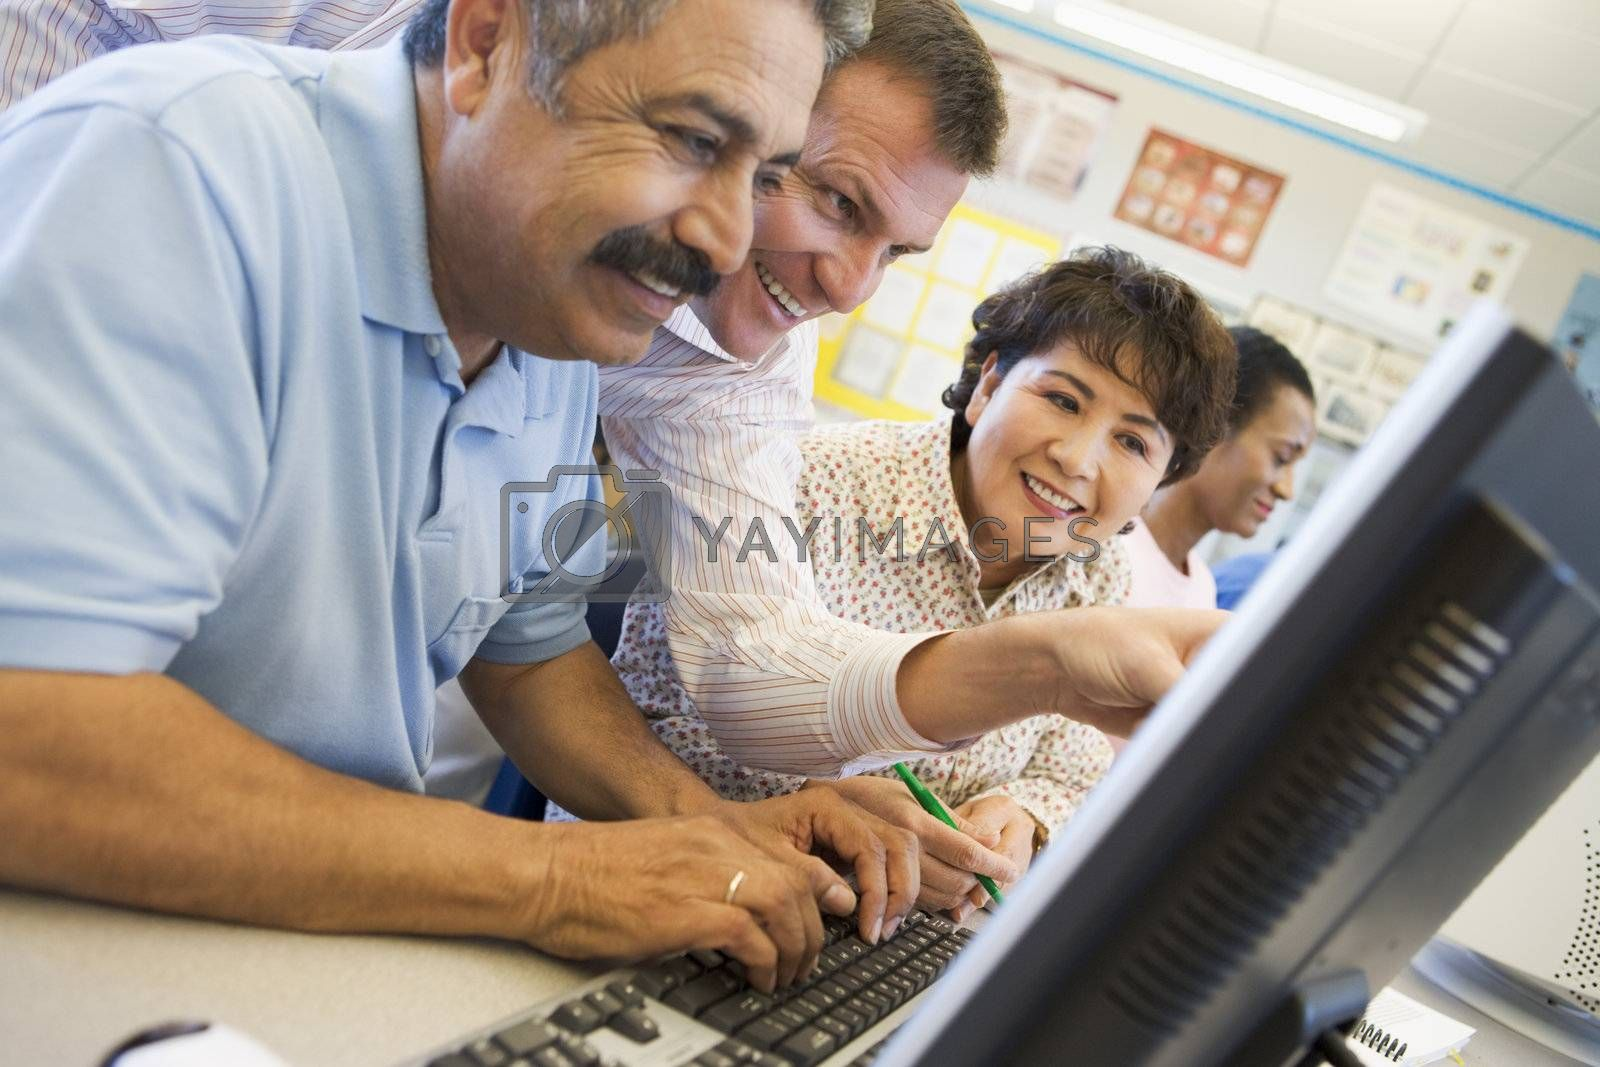 Mature students learning computer skills by MonkeyBusiness